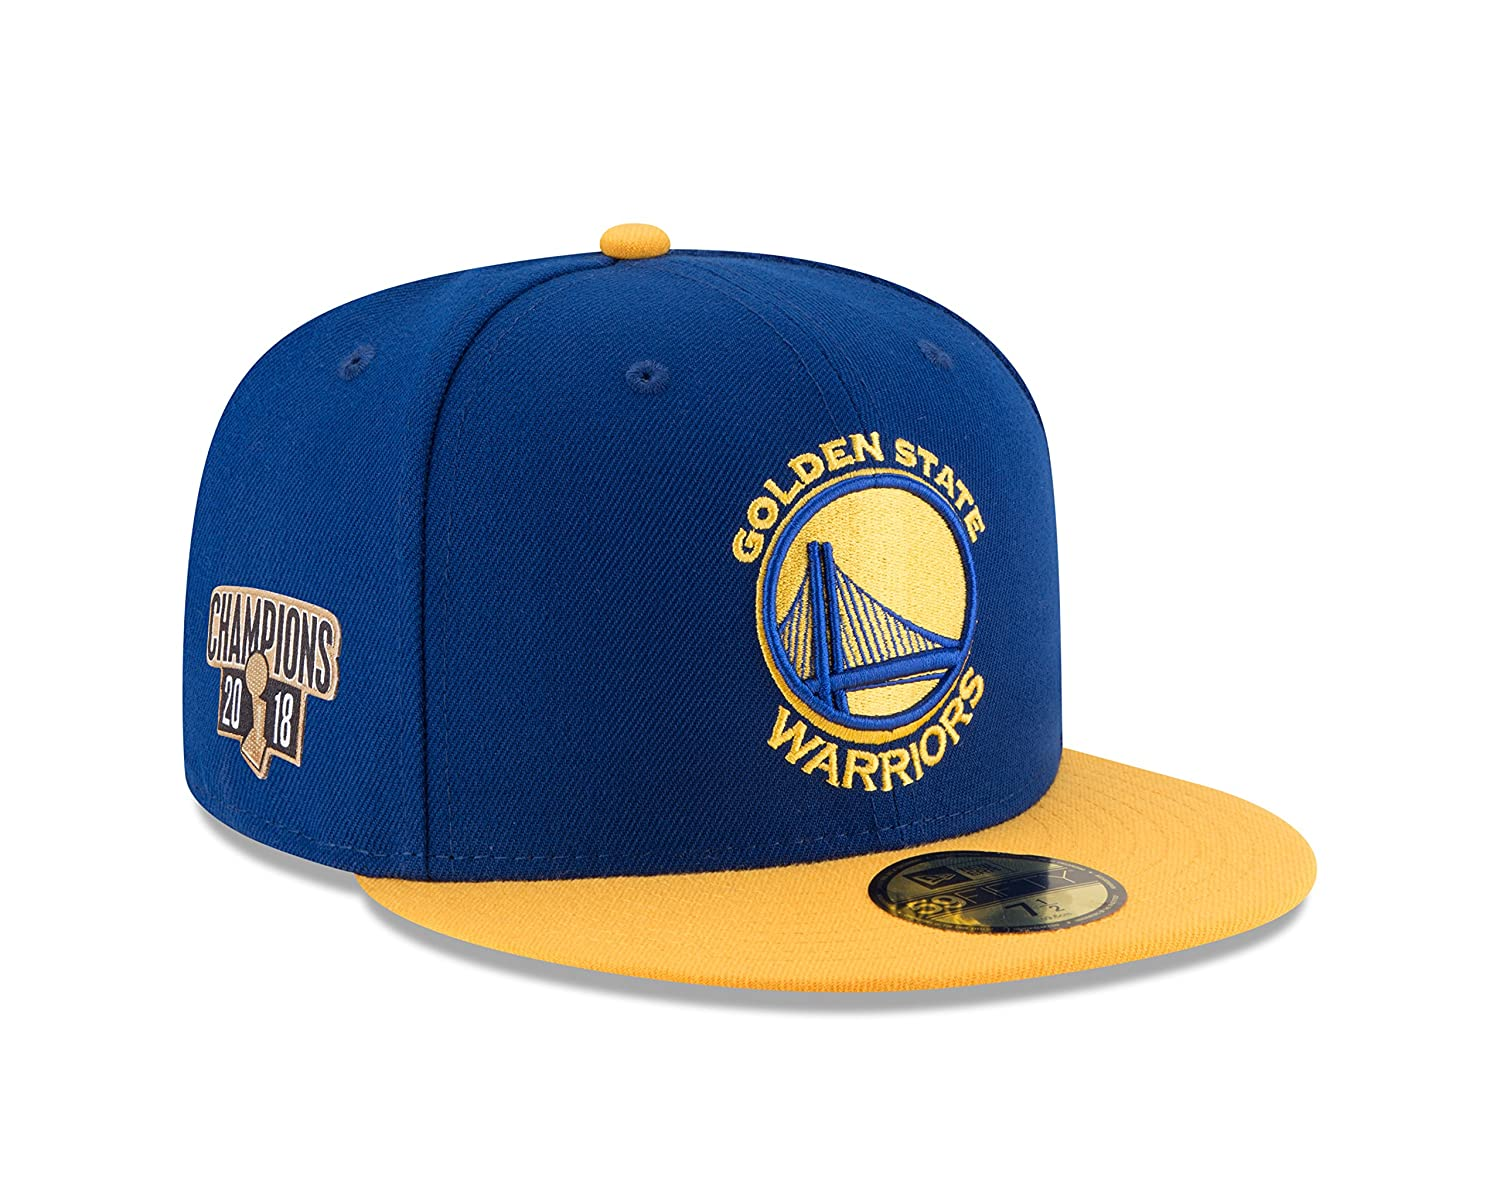 cd8fcae5cff Amazon.com   New Era Golden State Warriors 2018 NBA Finals Champions  59FIFTY Fitted Hat - Royal   Sports   Outdoors